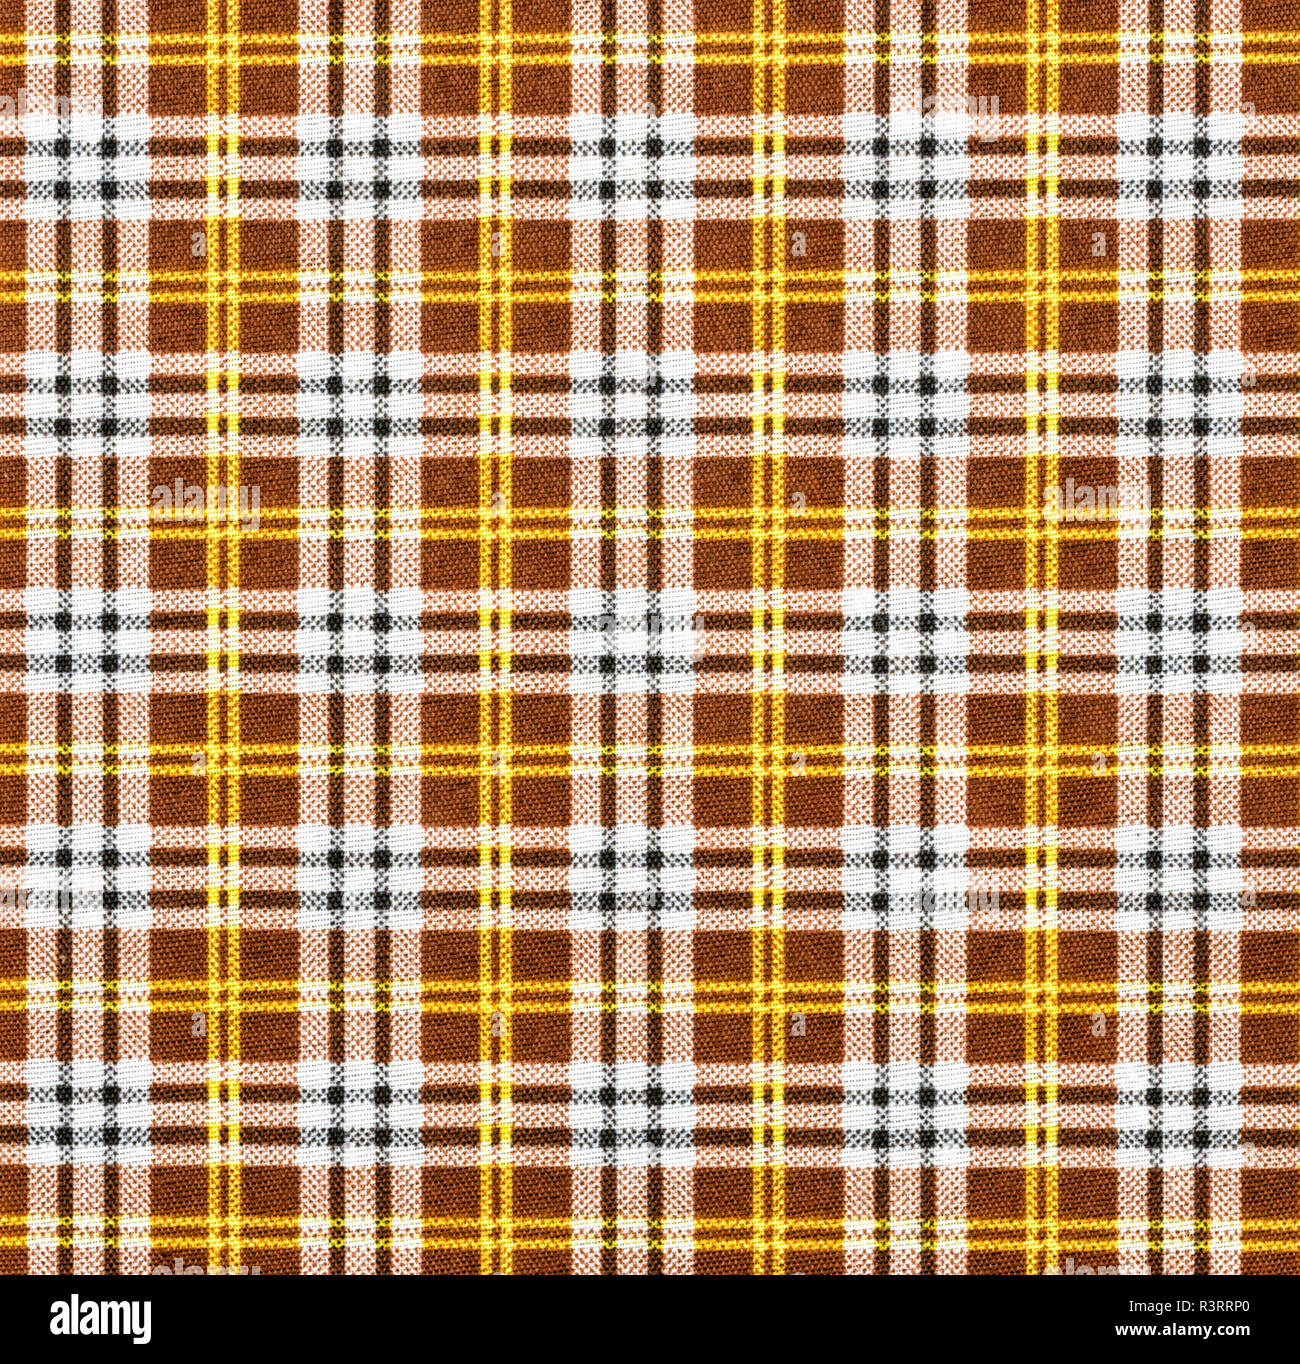 fabric with check pattern in brown tones - Stock Image